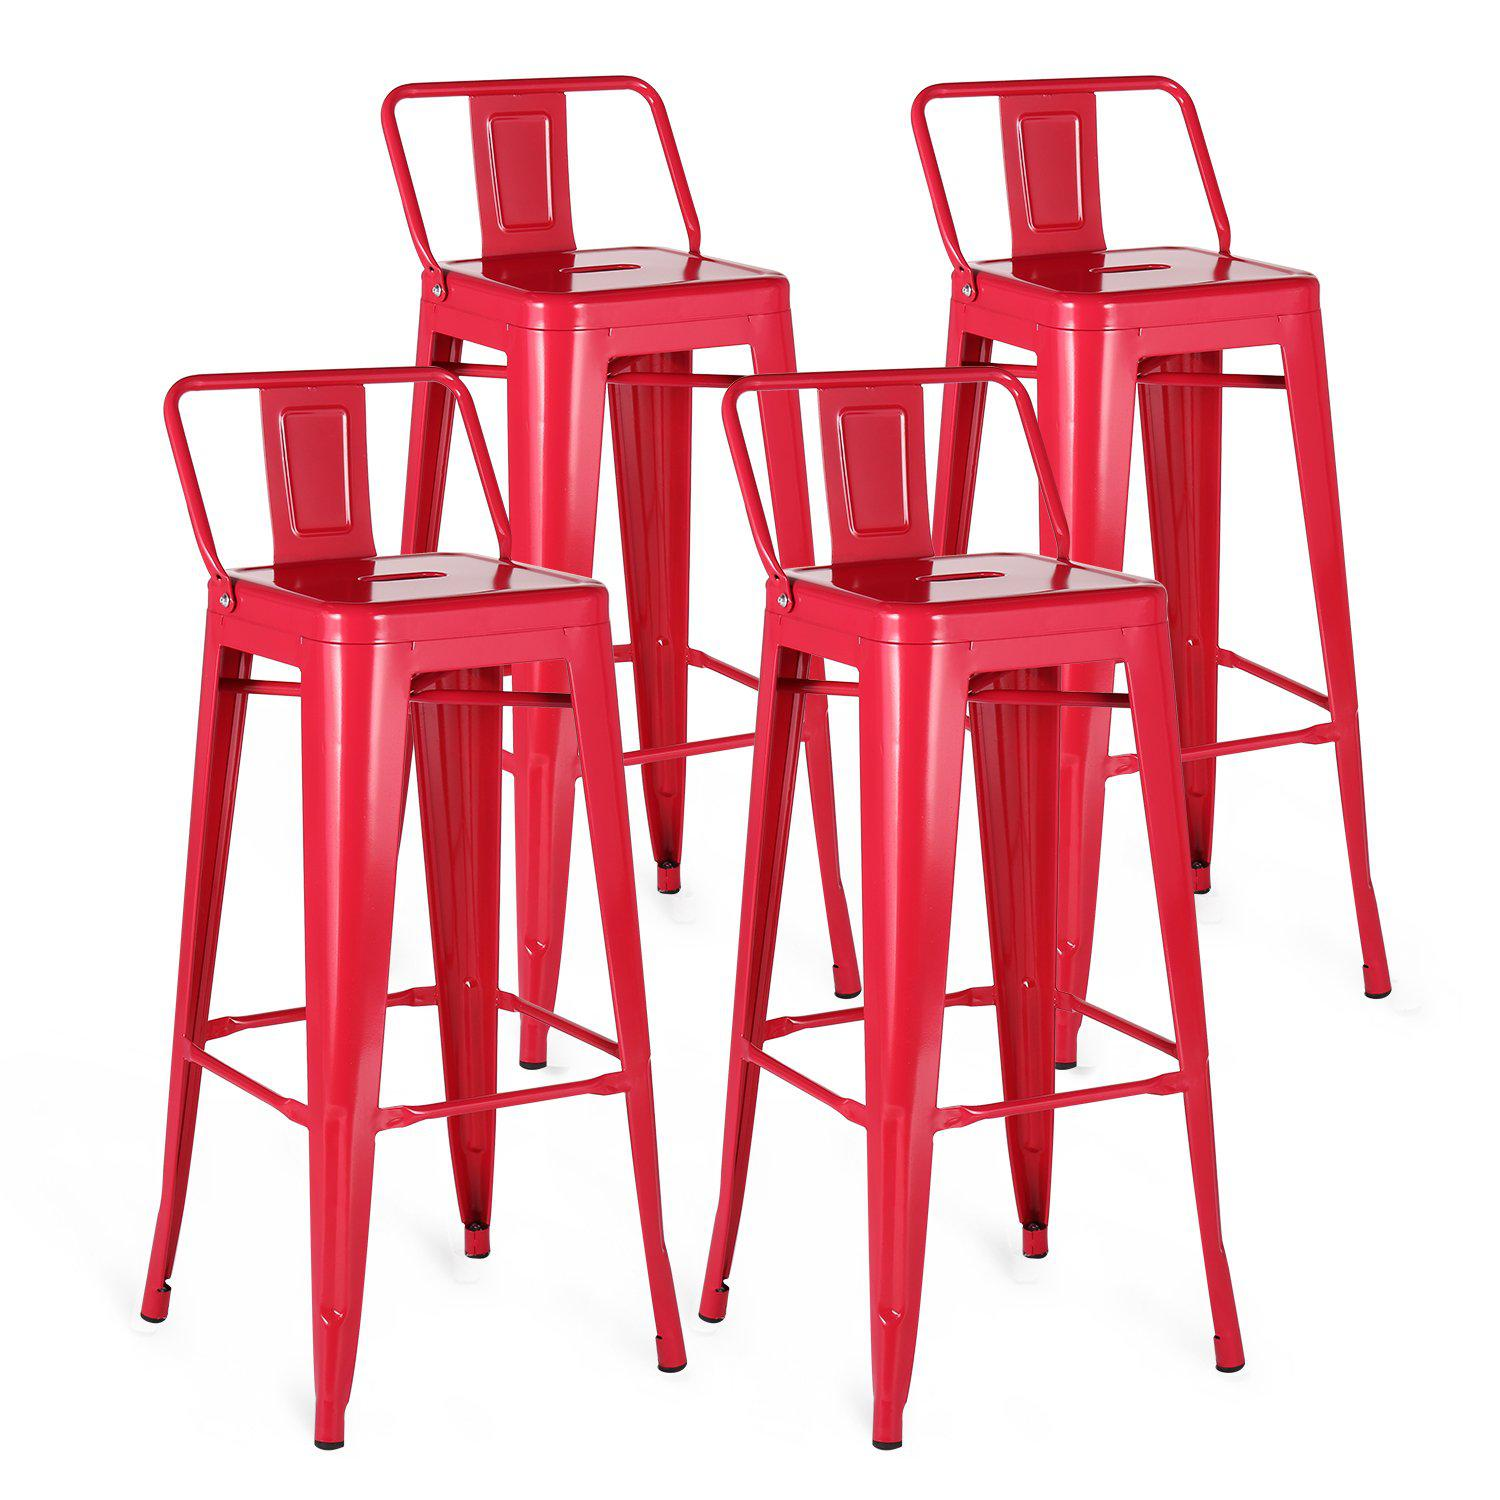 Groovy Metal Bar Stools Set Of 4 Mc02 Cjindustries Chair Design For Home Cjindustriesco